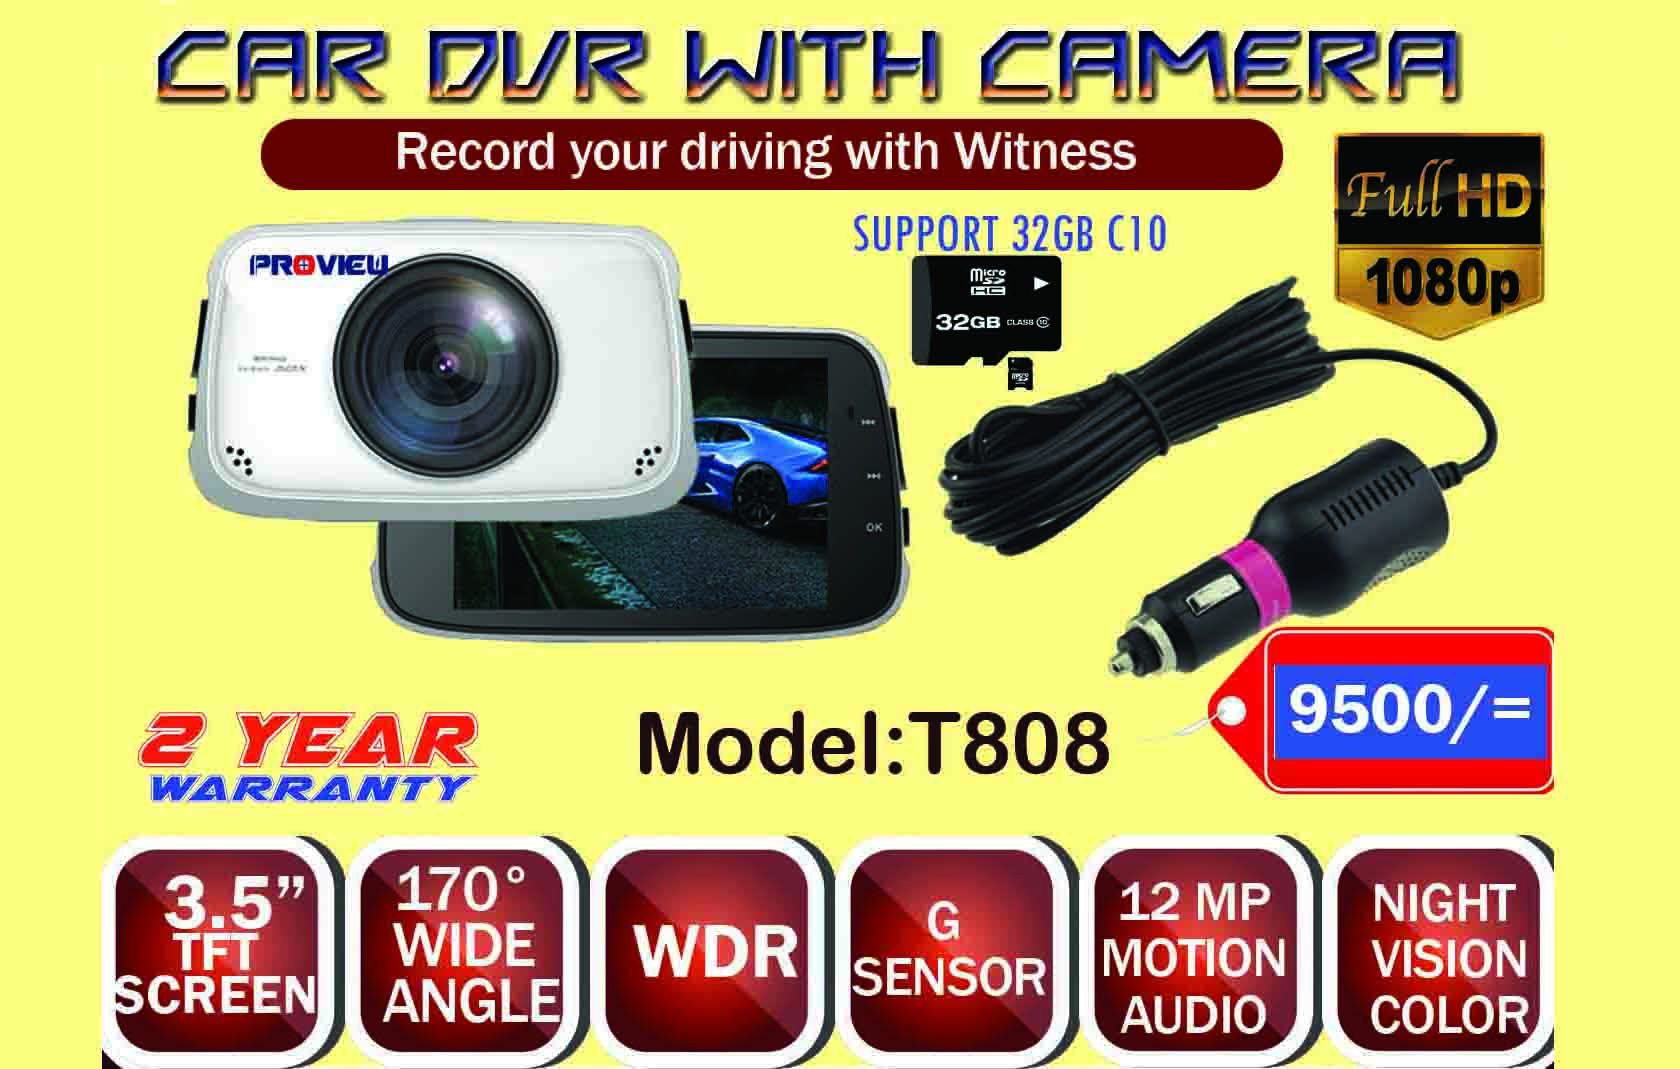 Best Car Security Camera To Record At Night